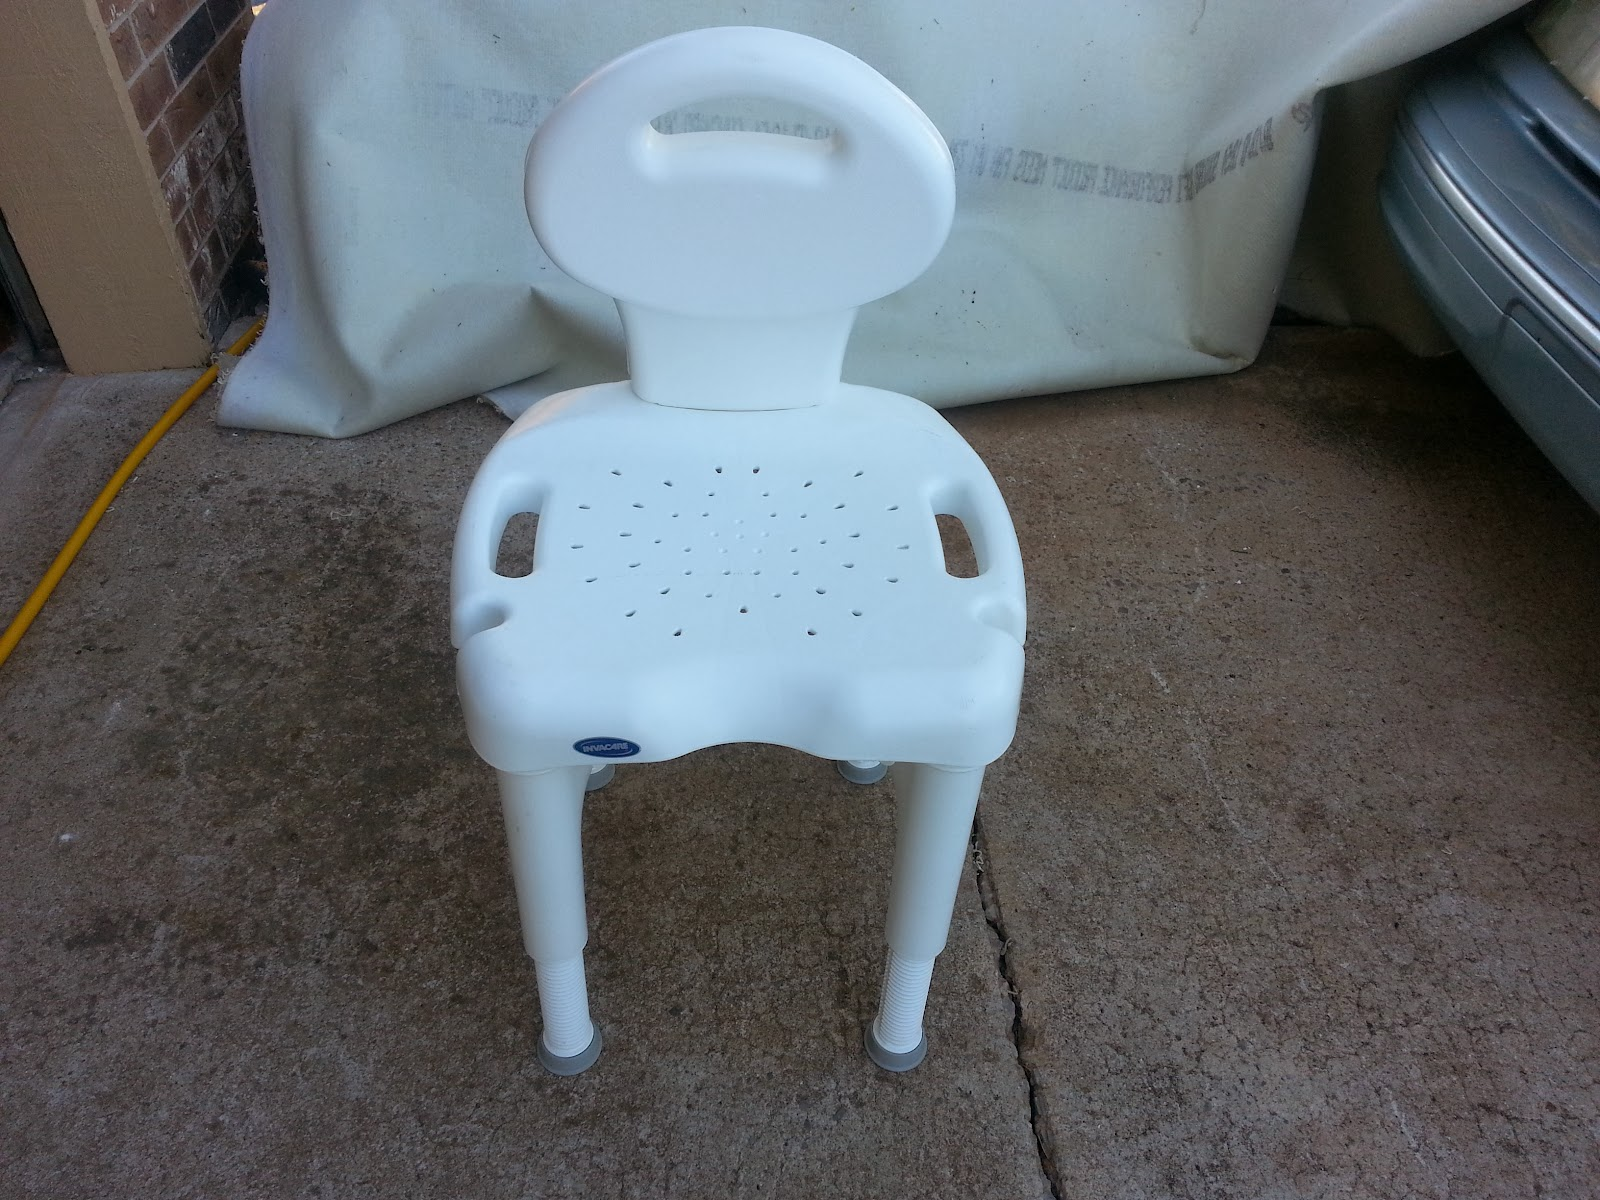 Invacare Shower Chair (Oklahoma City Craigslist) $50